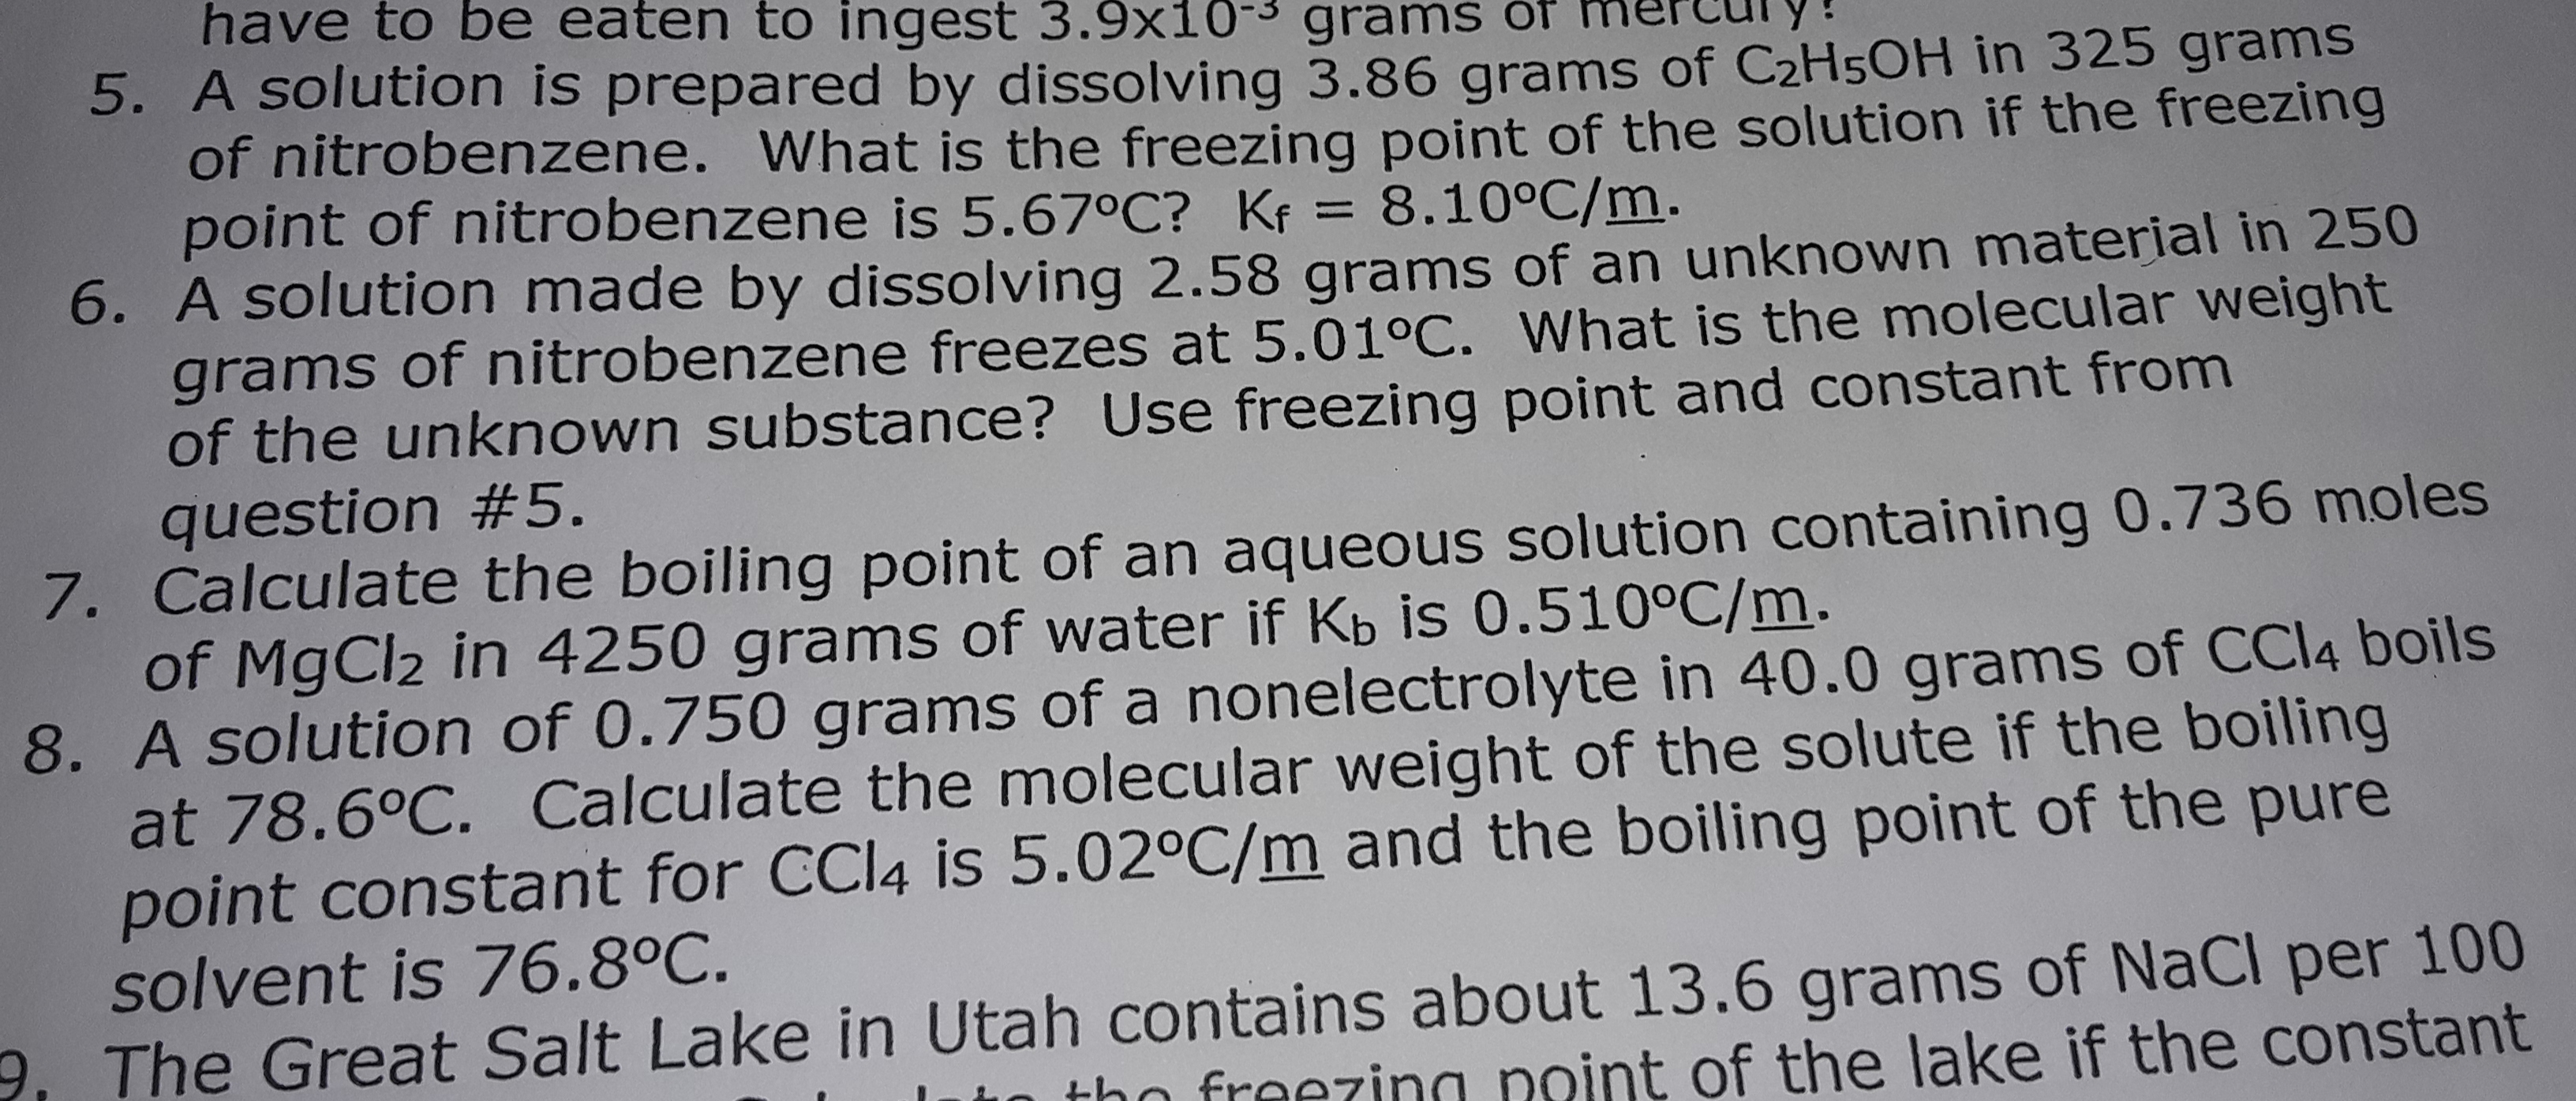 have to be eaten to ingest 3.9x10 gramS 5. A solution is prepared by dissolving 3.86 grams of C2H5OH in 325 grams of nitrobenzene. What is the freezing point of the solution if the freezing point of nitrobenzene is 5.67°C? Kf = 8.10°C/m. 6. A solution made by dissolving 2.58 grams of an unknown material in 250 grams of nitrobenzene freezes at 5.01°C. What is the molecular weight of the unknown substance? Use freezing point and constant from question #5. 7. Calculate the boiling point of an aqueous solution containing 0.736 moles of MgCl2 in 4250 grams of water if Kb is 0.510°C/m. 8. A solution of 0.750 grams of a nonelectrolyte in 40.0 grams of CCI4 boils at 78.6°C. Calculate the molecular weight of the solute if the boiling point constant for CCI4 is 5.02°C/m and the boiling point of the pure solvent is 76.8°C. The Great Salt Lake in Utah contains about 13.6 grams of NaCl per 100 fraezinn noint of the lake if the constant